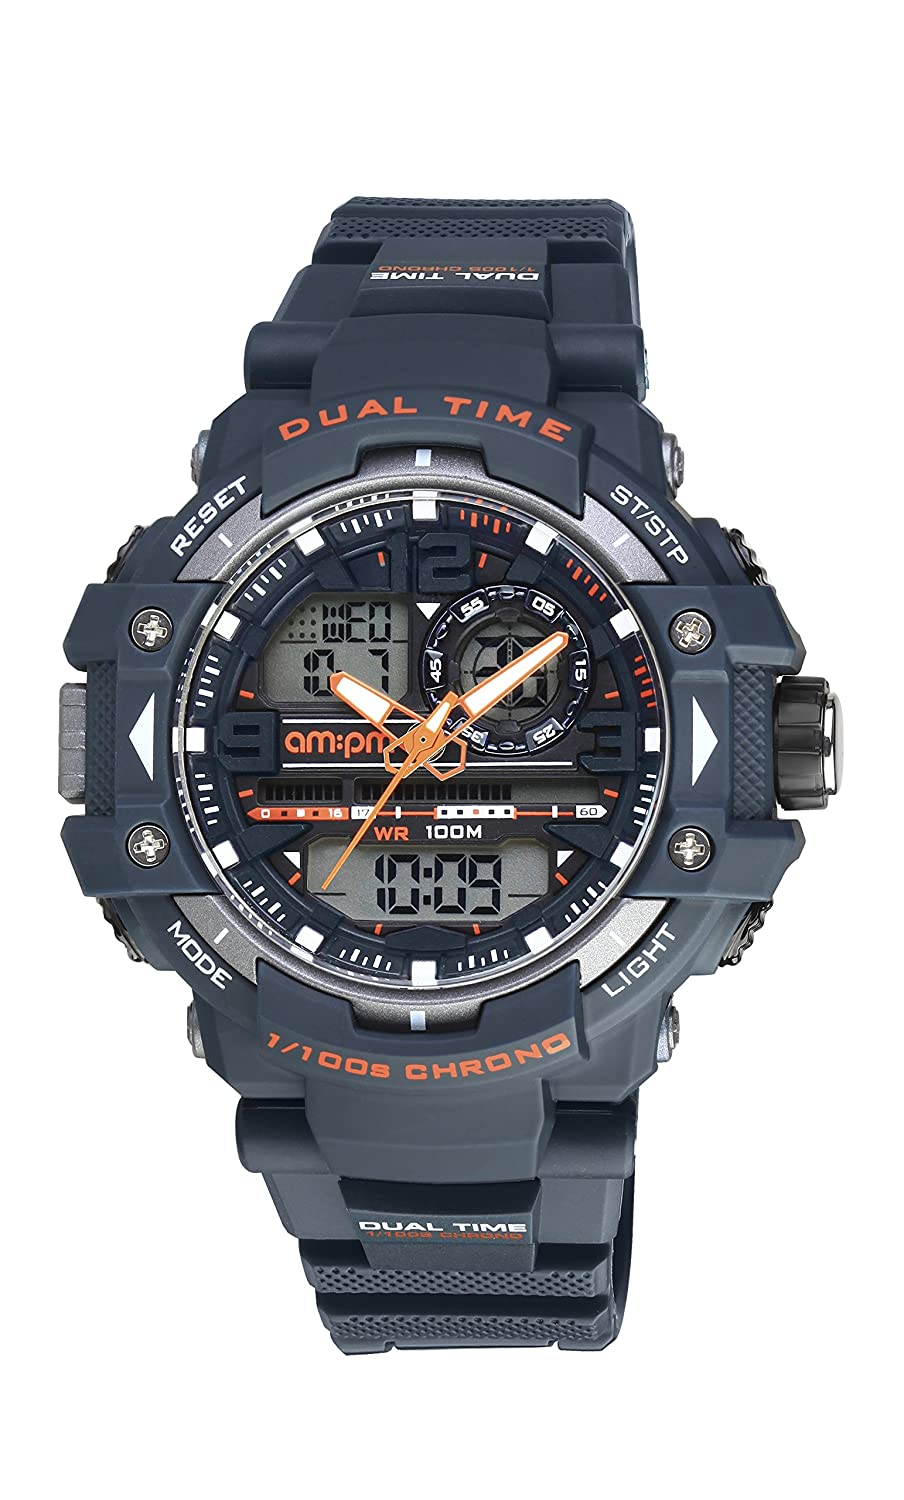 Amazon.com: AM:PM PC165-G401 Mens Digital/Analog Navy Blue Sports Watch Orange Accents: AM:PM: Watches